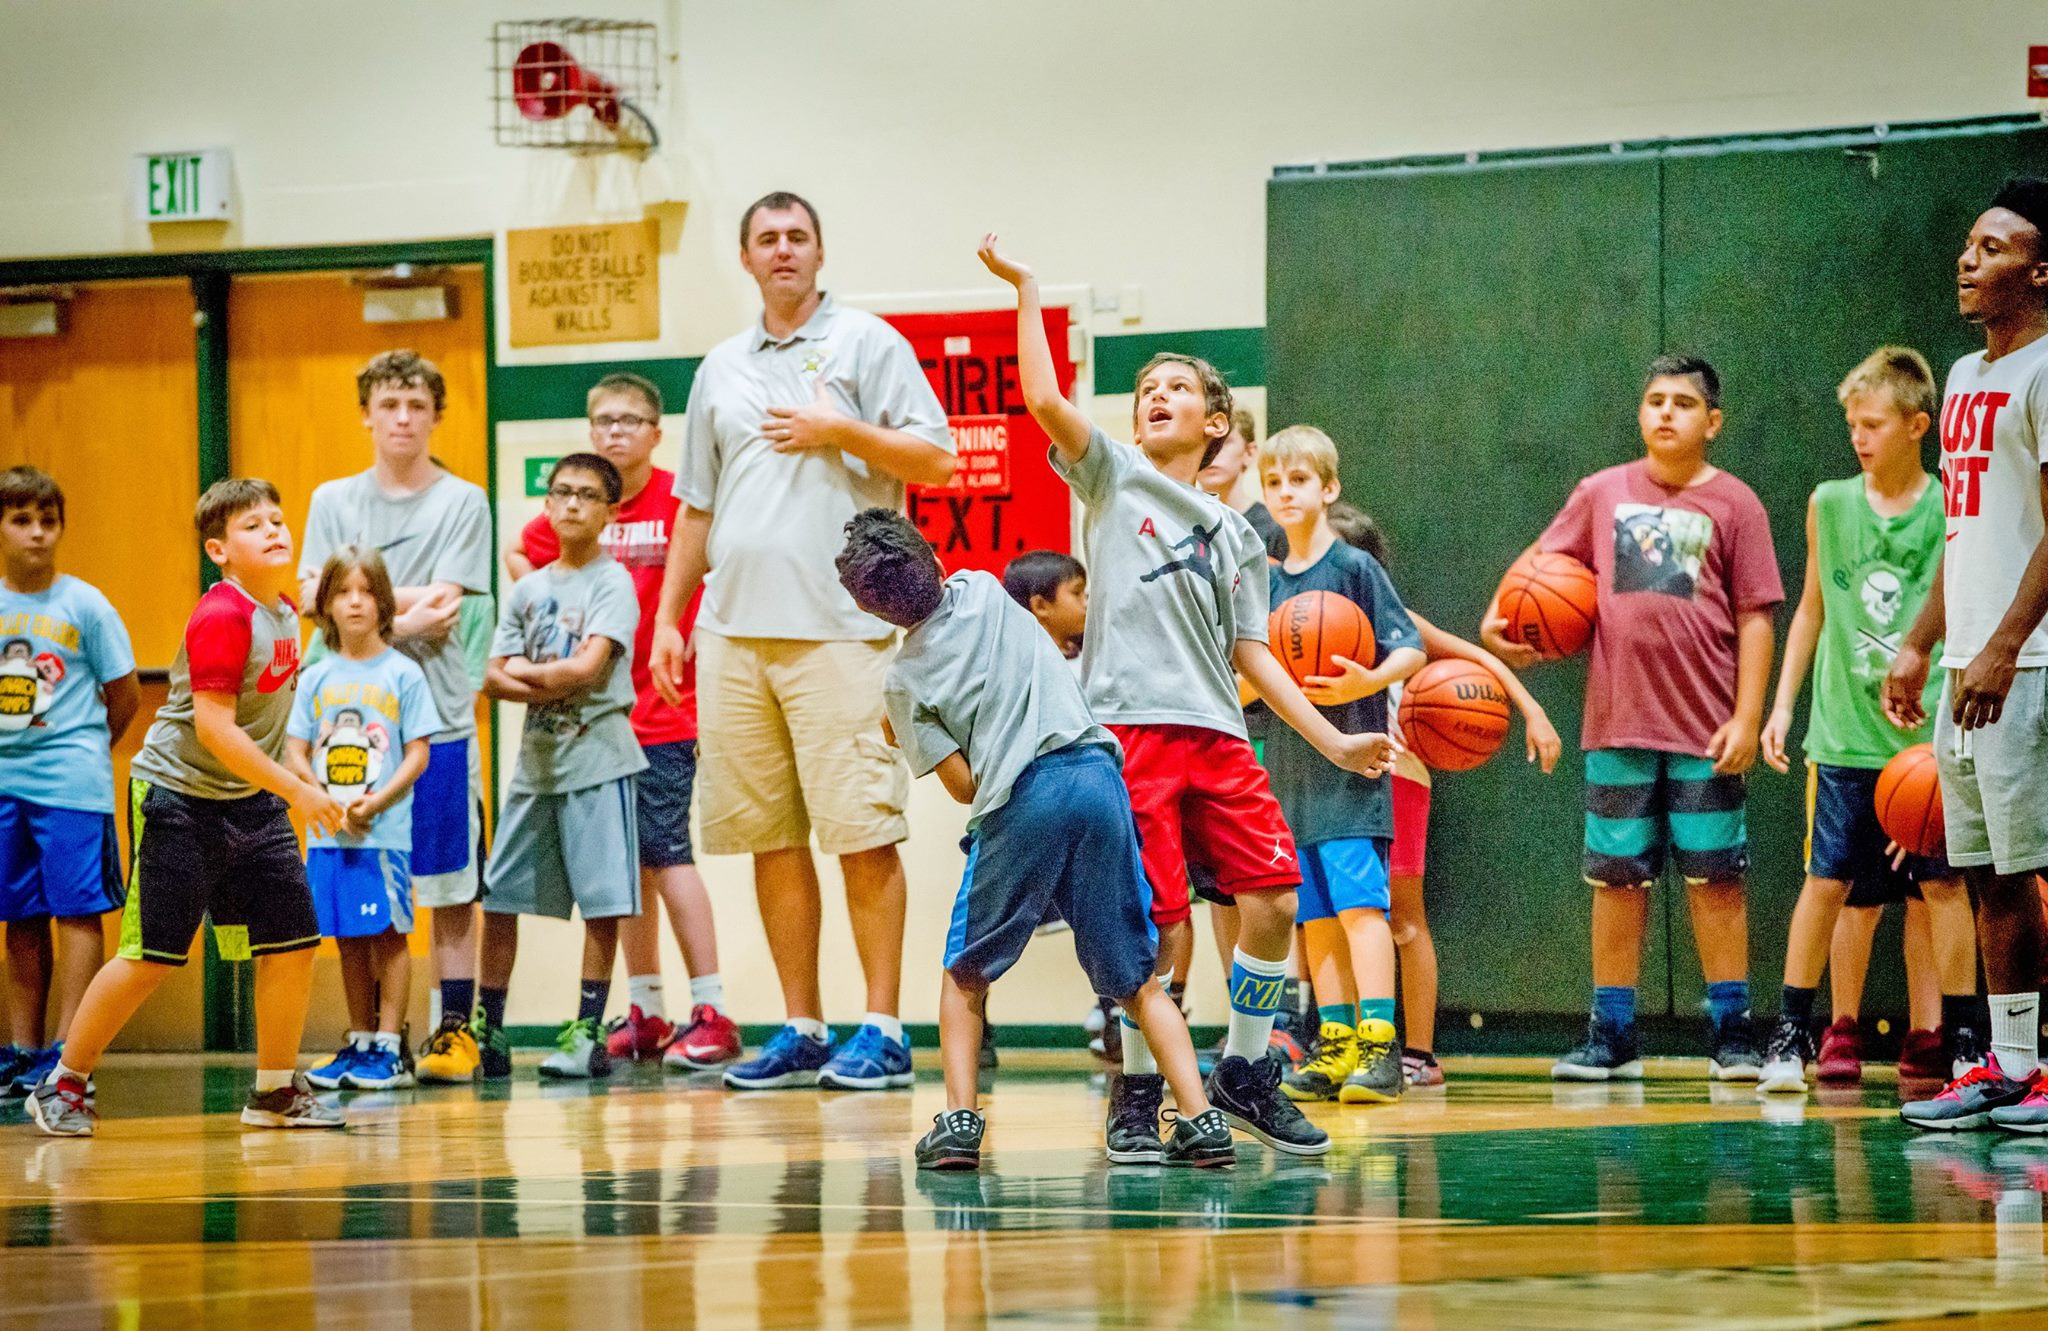 https://monarchcamps.com/wp-content/uploads/2018/01/monarch-camps-summer-camp-in-los-angeles-basketball-day-camp-children-playing-basketball-in-basketball-court.jpg